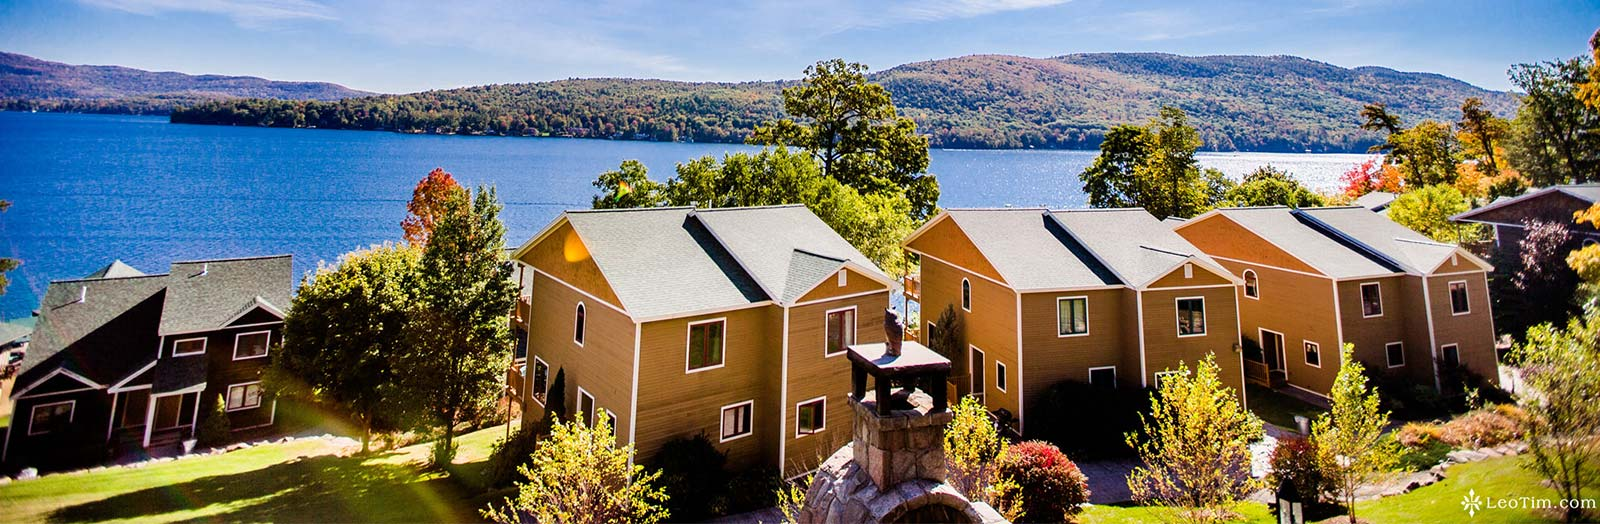 Townhomes overlooking lake george on sunny day